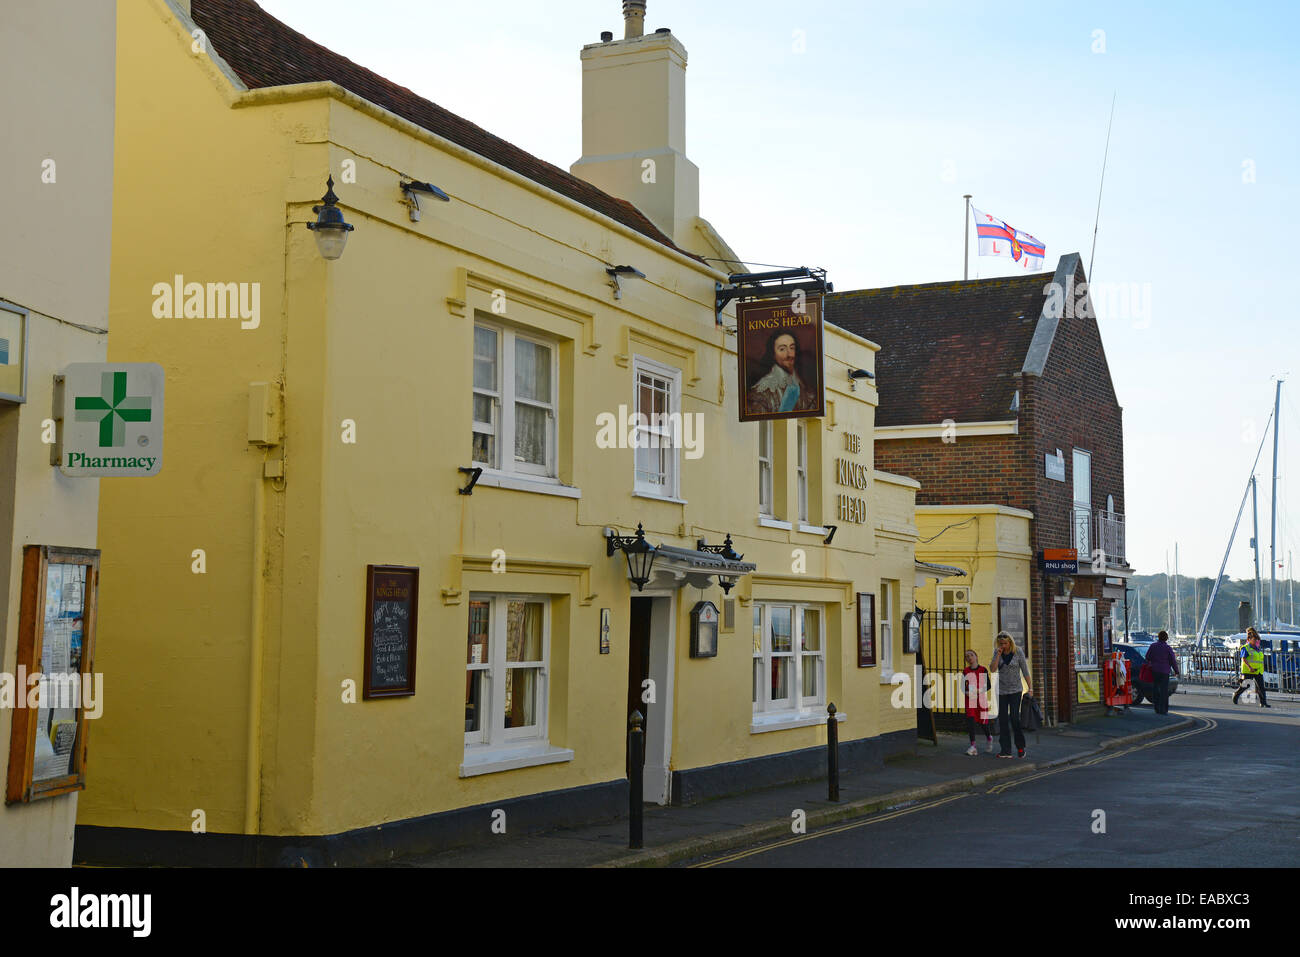 The Kings Head, Quay Street, Yarmouth, Isle of Wight, England, United Kingdom - Stock Image